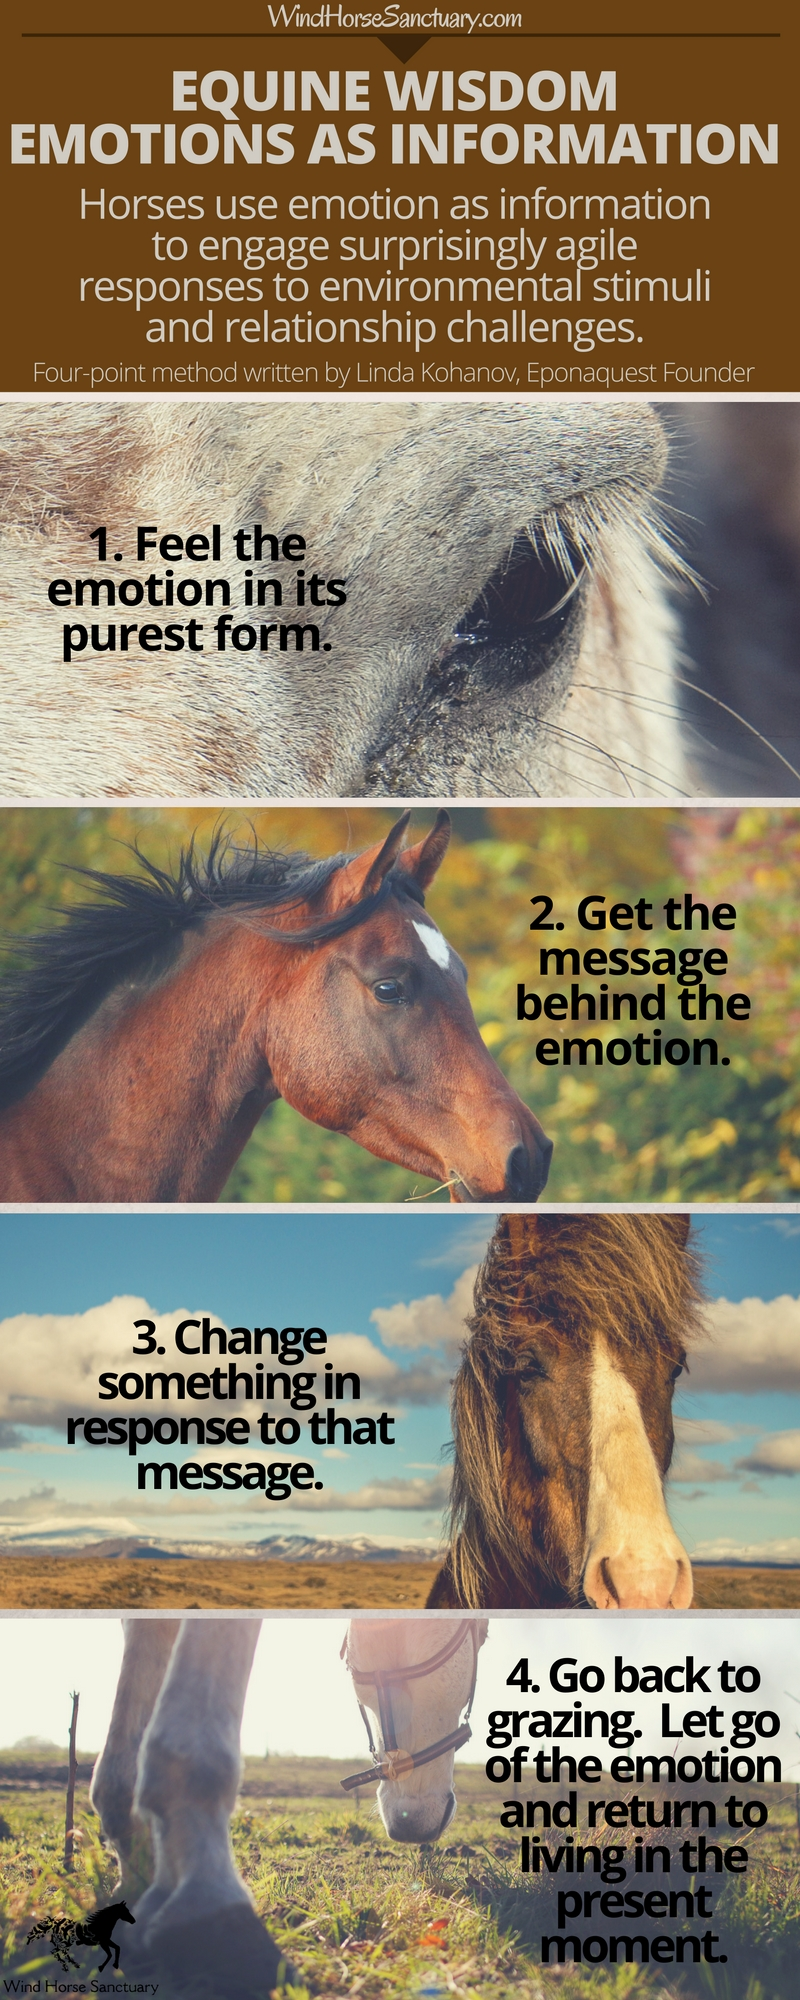 Emotions as Information - Wind Horse Sanctuary Infographic.jpg